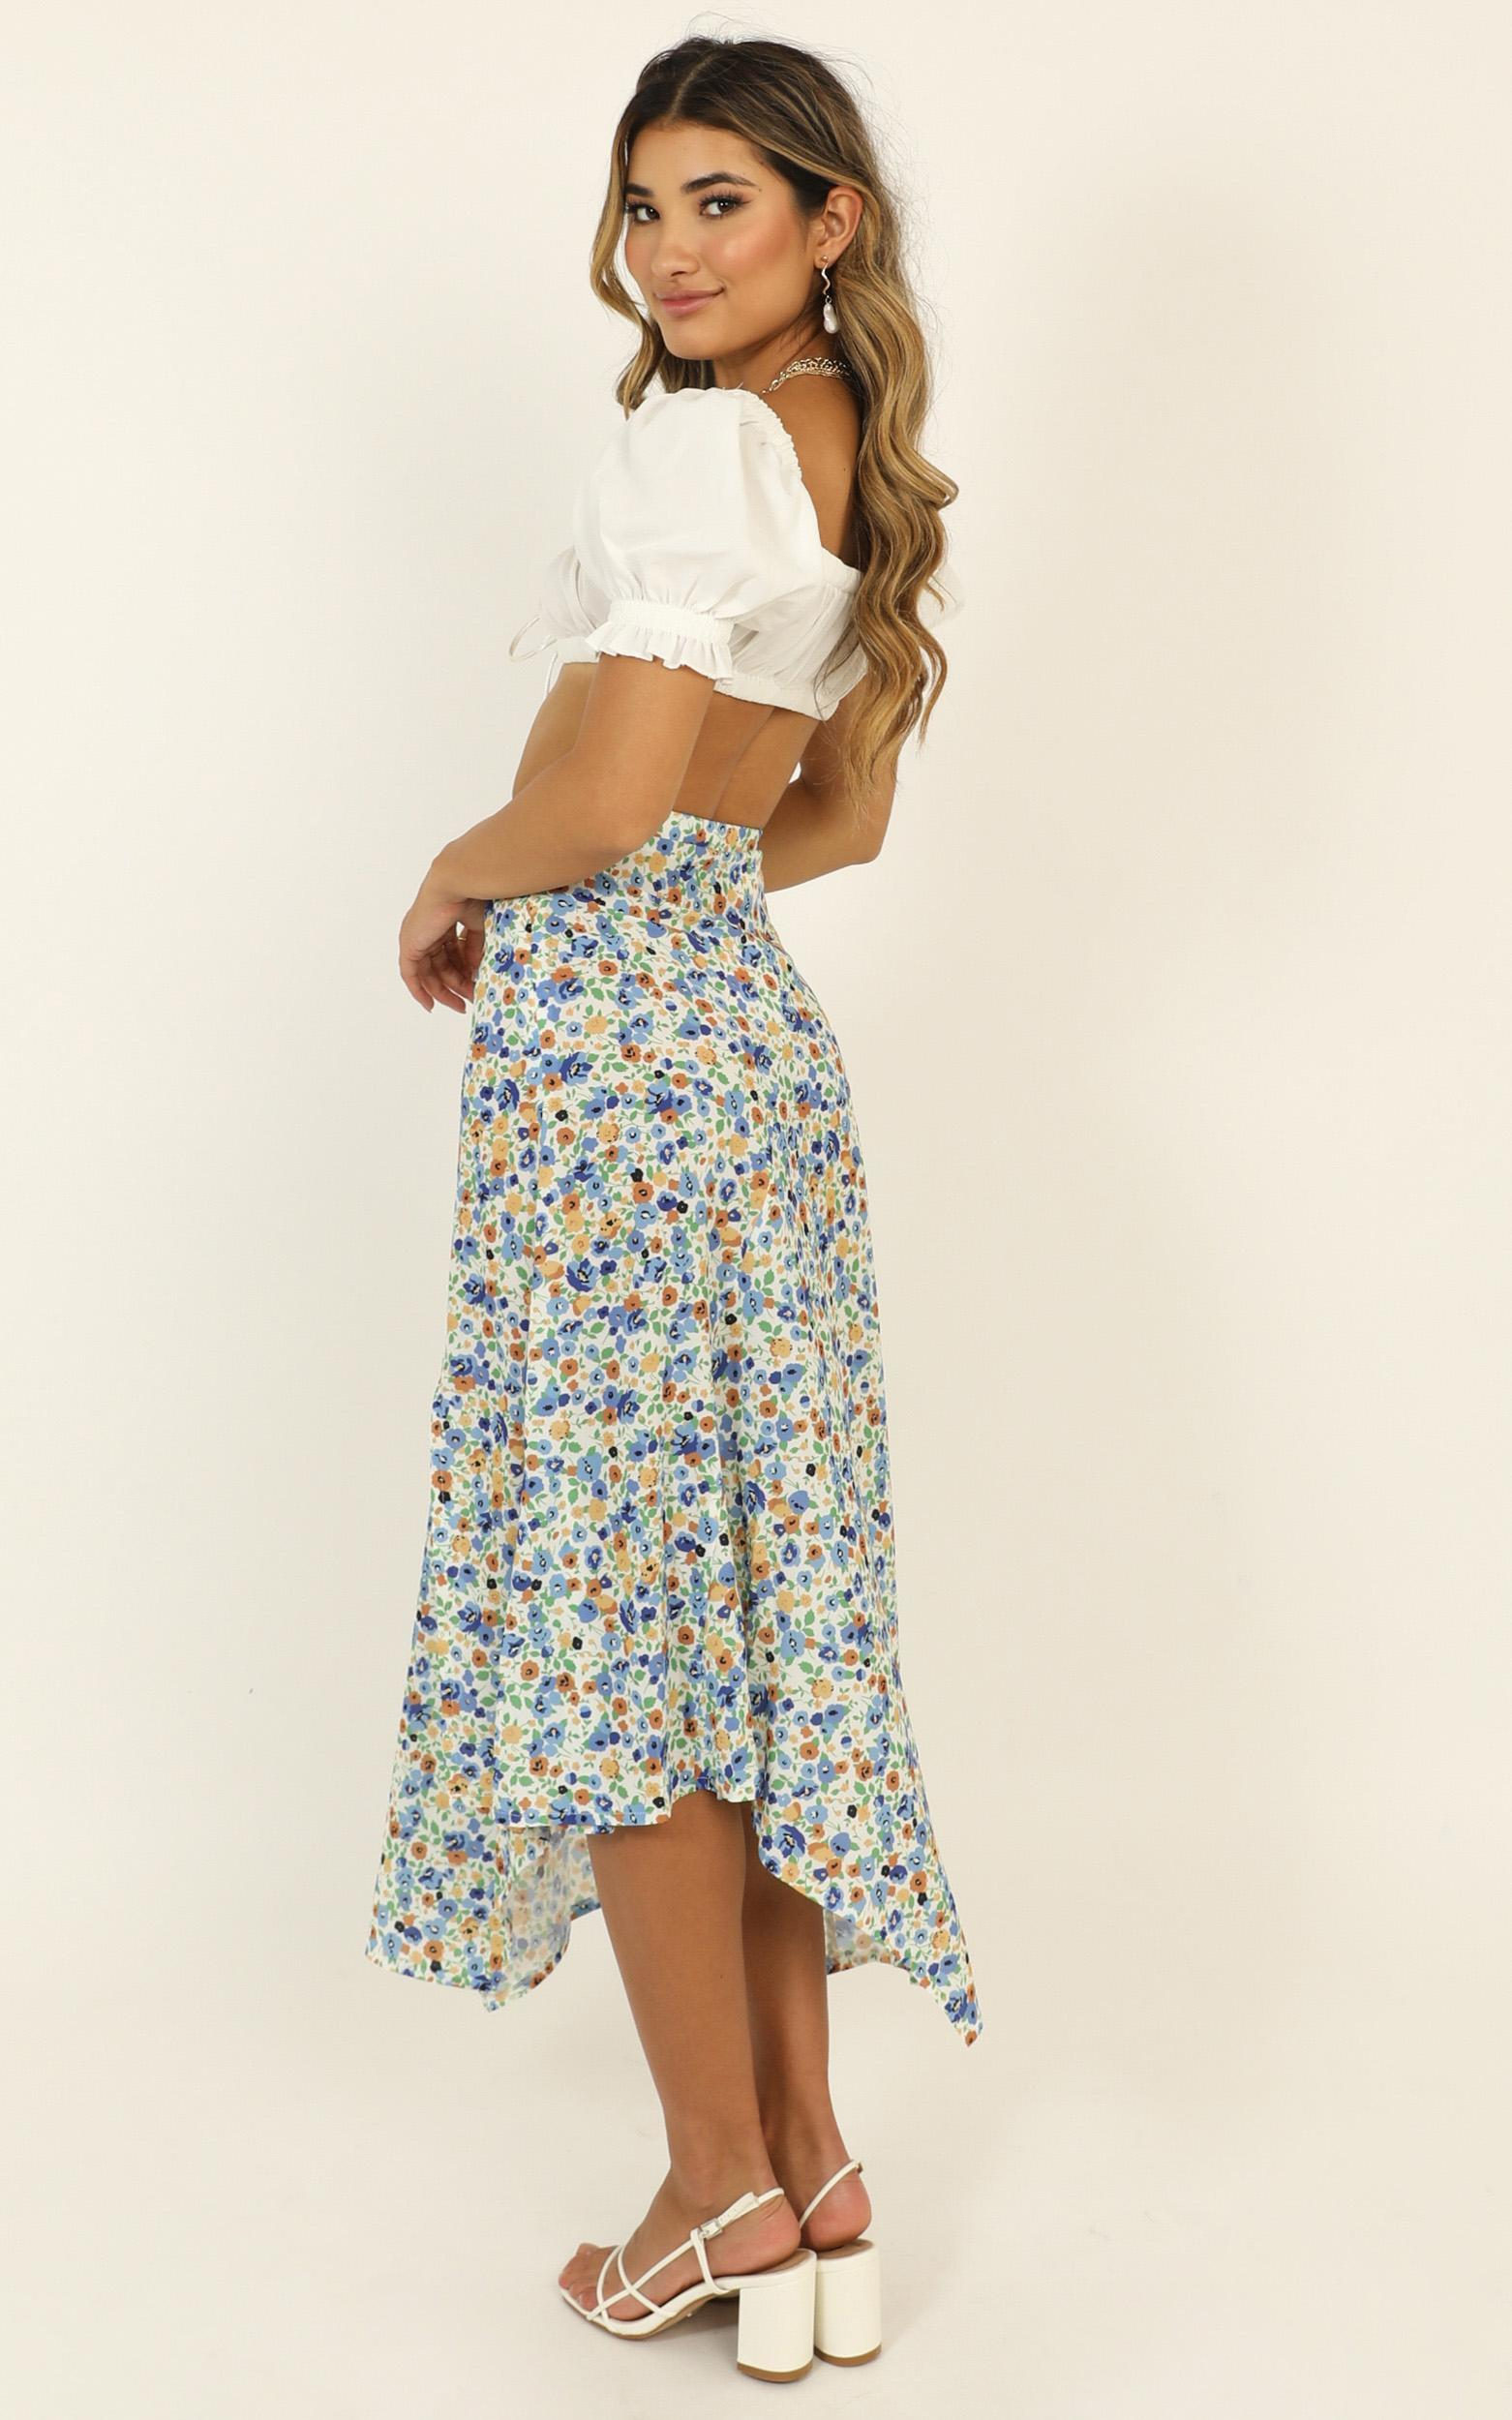 She Still Blooms skirt in blue floral - 16 (XXL), Blue, hi-res image number null